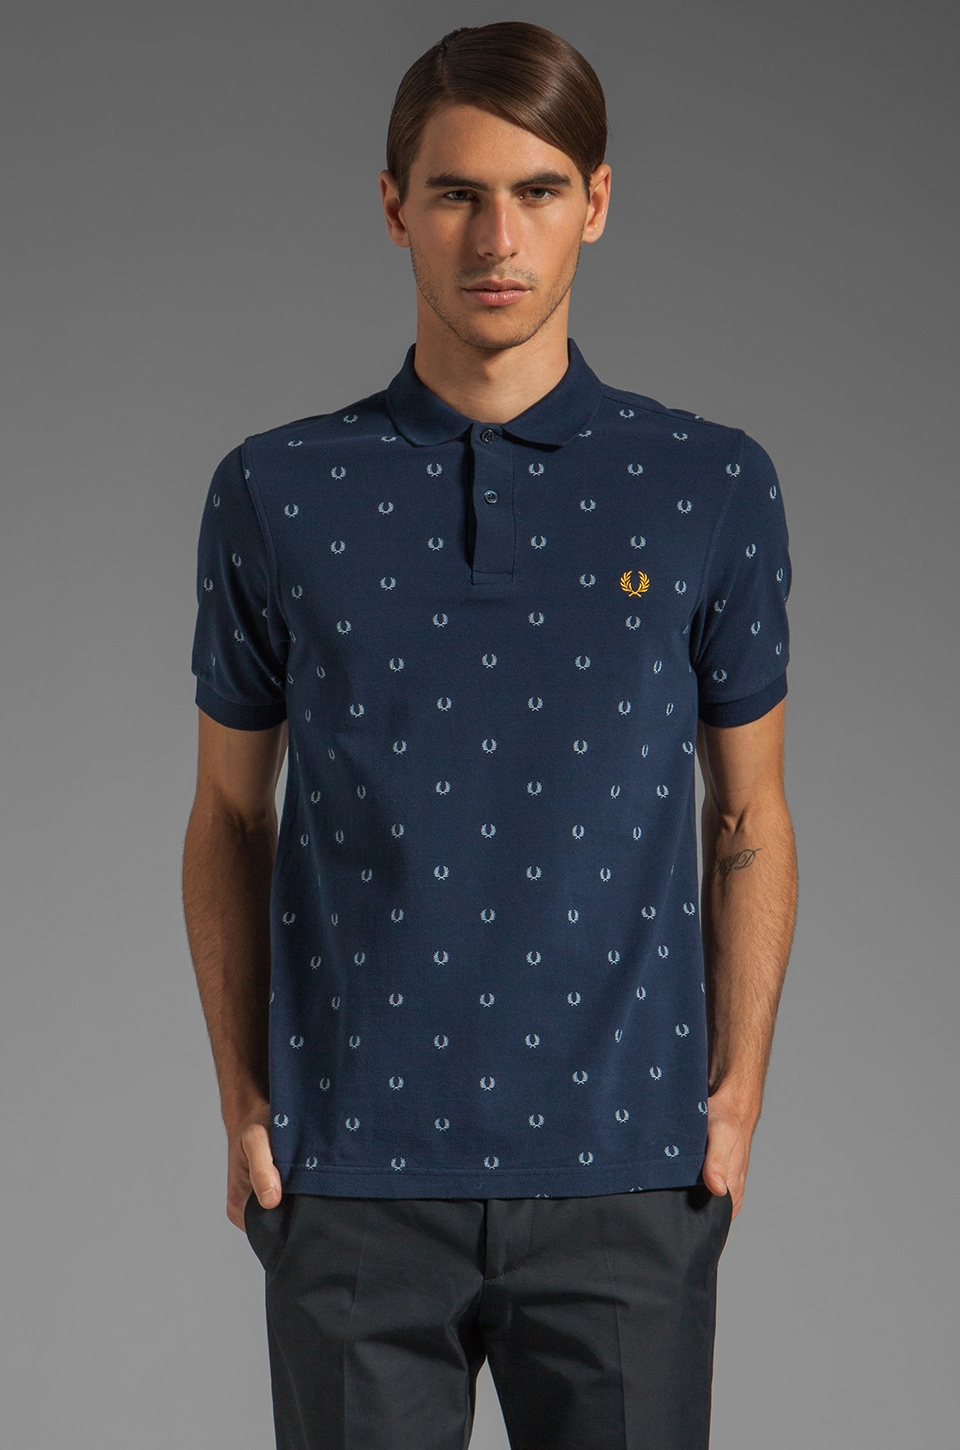 Fred Perry Laurel Print Shirt in Dark Carbon